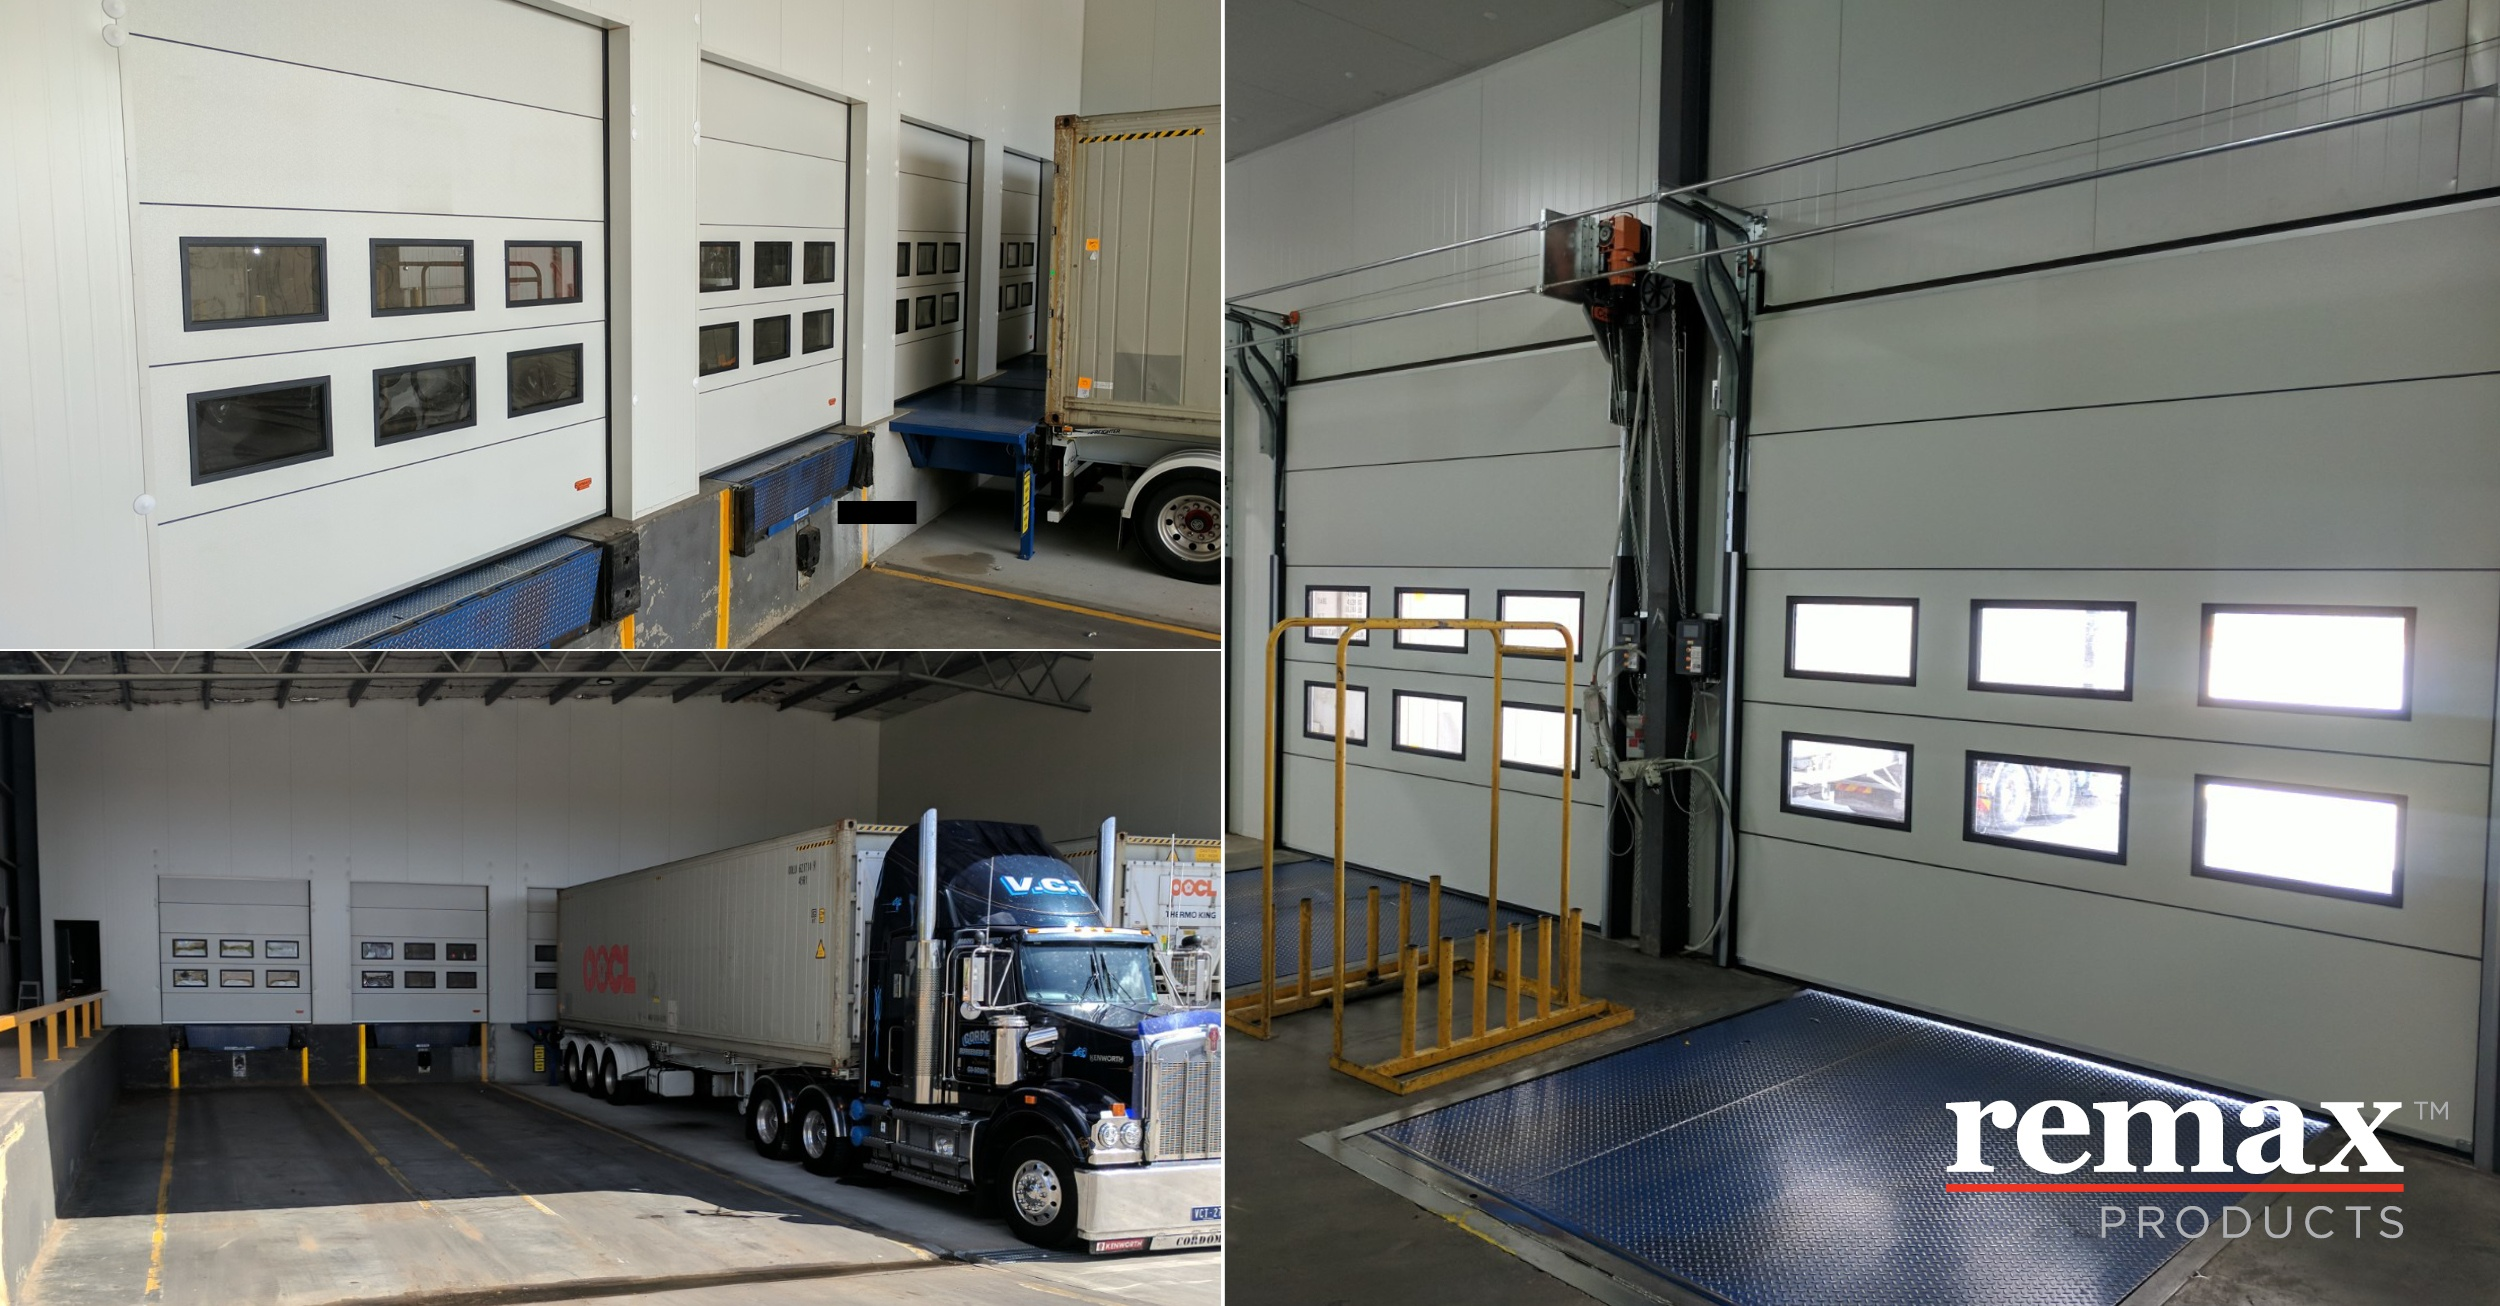 Leslie Refrigerated Transport loading dock doors which are insulated and fold up